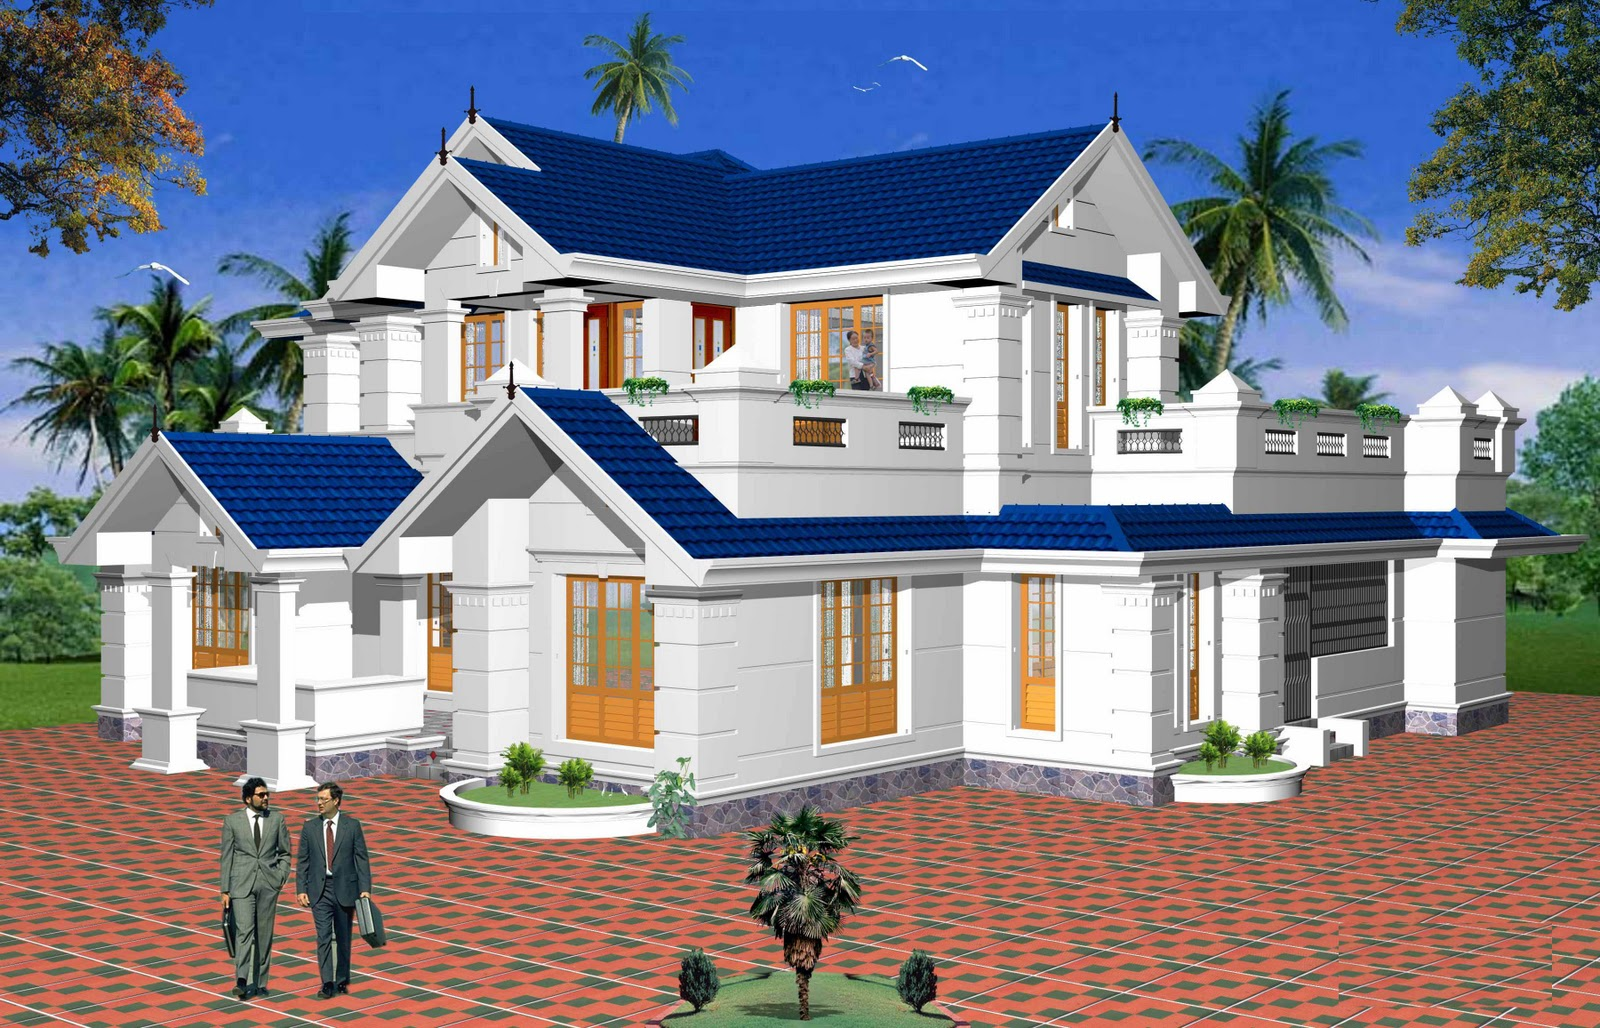 New home designs latest.: Beautiful latest modern home designs.